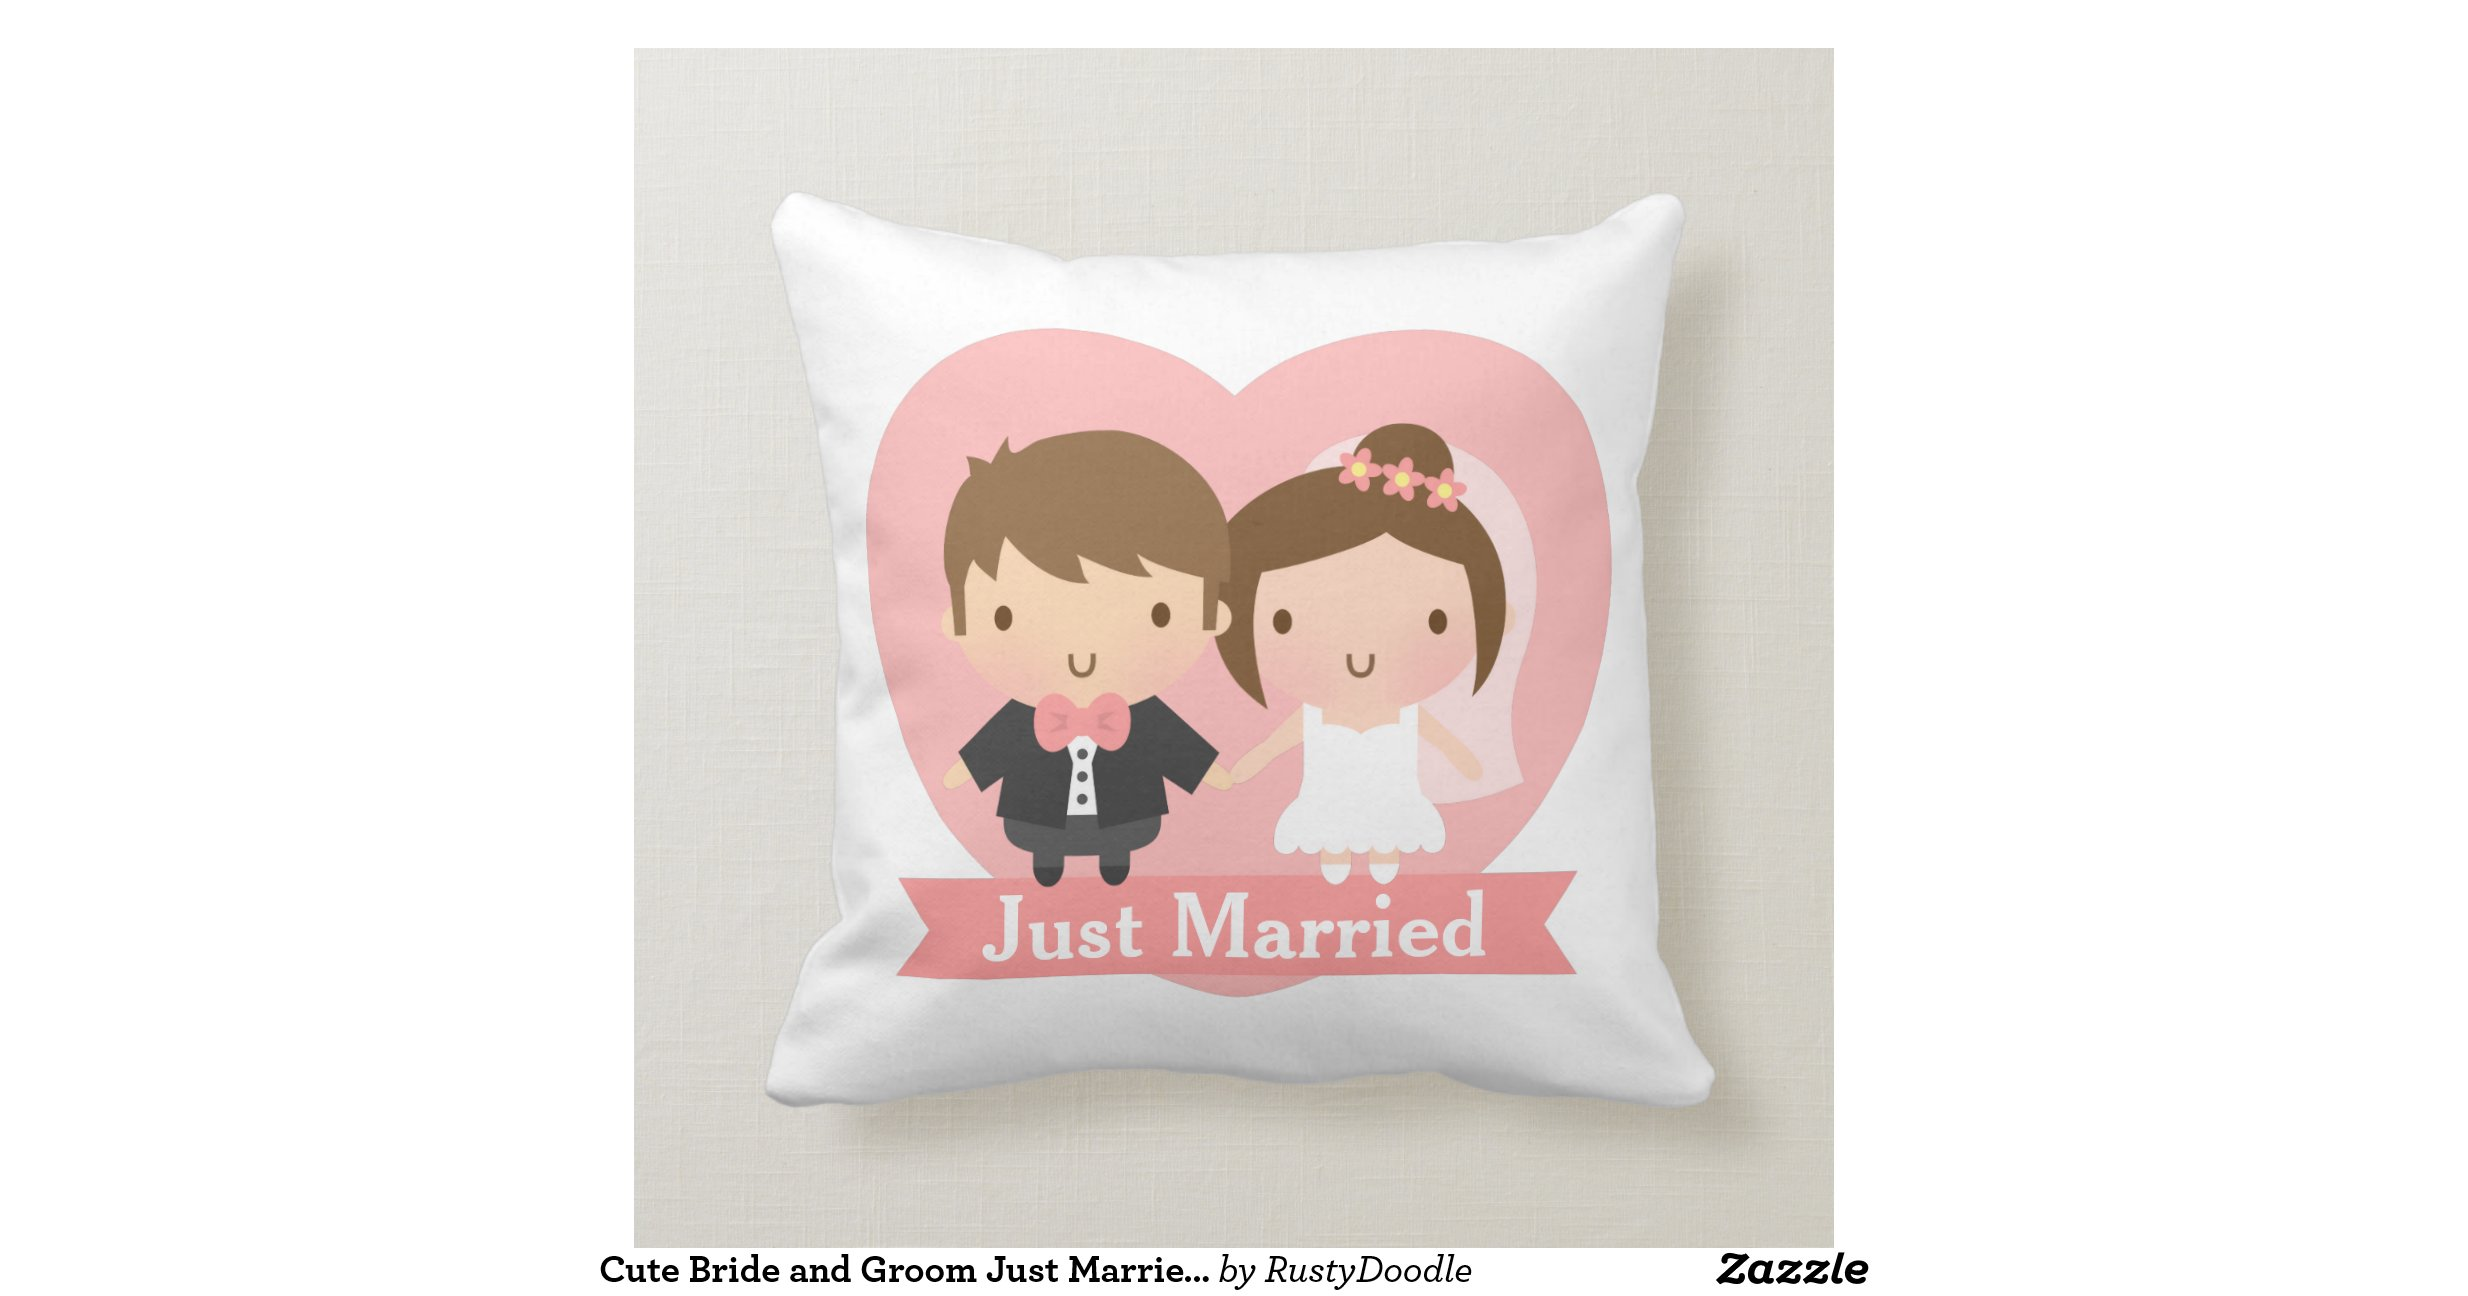 Cute Bride and Groom Just Married Couple Bedroom Throw Pillows Zazzle